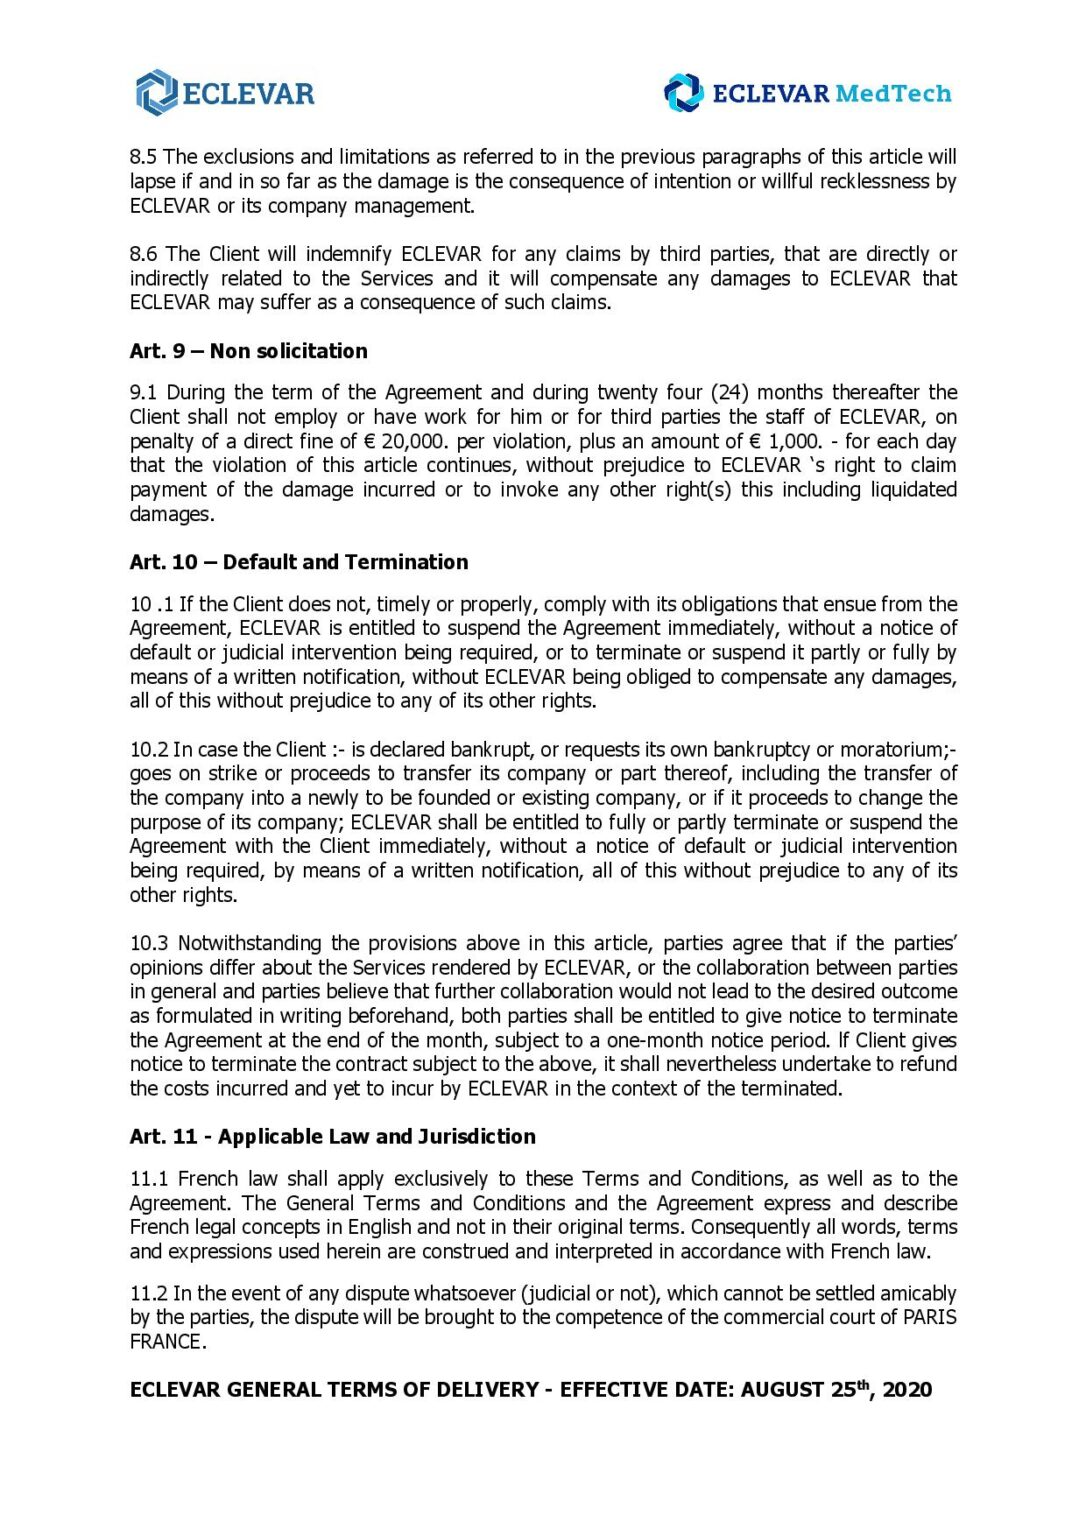 ECLEVAR GENERAL TERMS OF DELIVERY FINAL 21 08 2020_MedTech-page-004